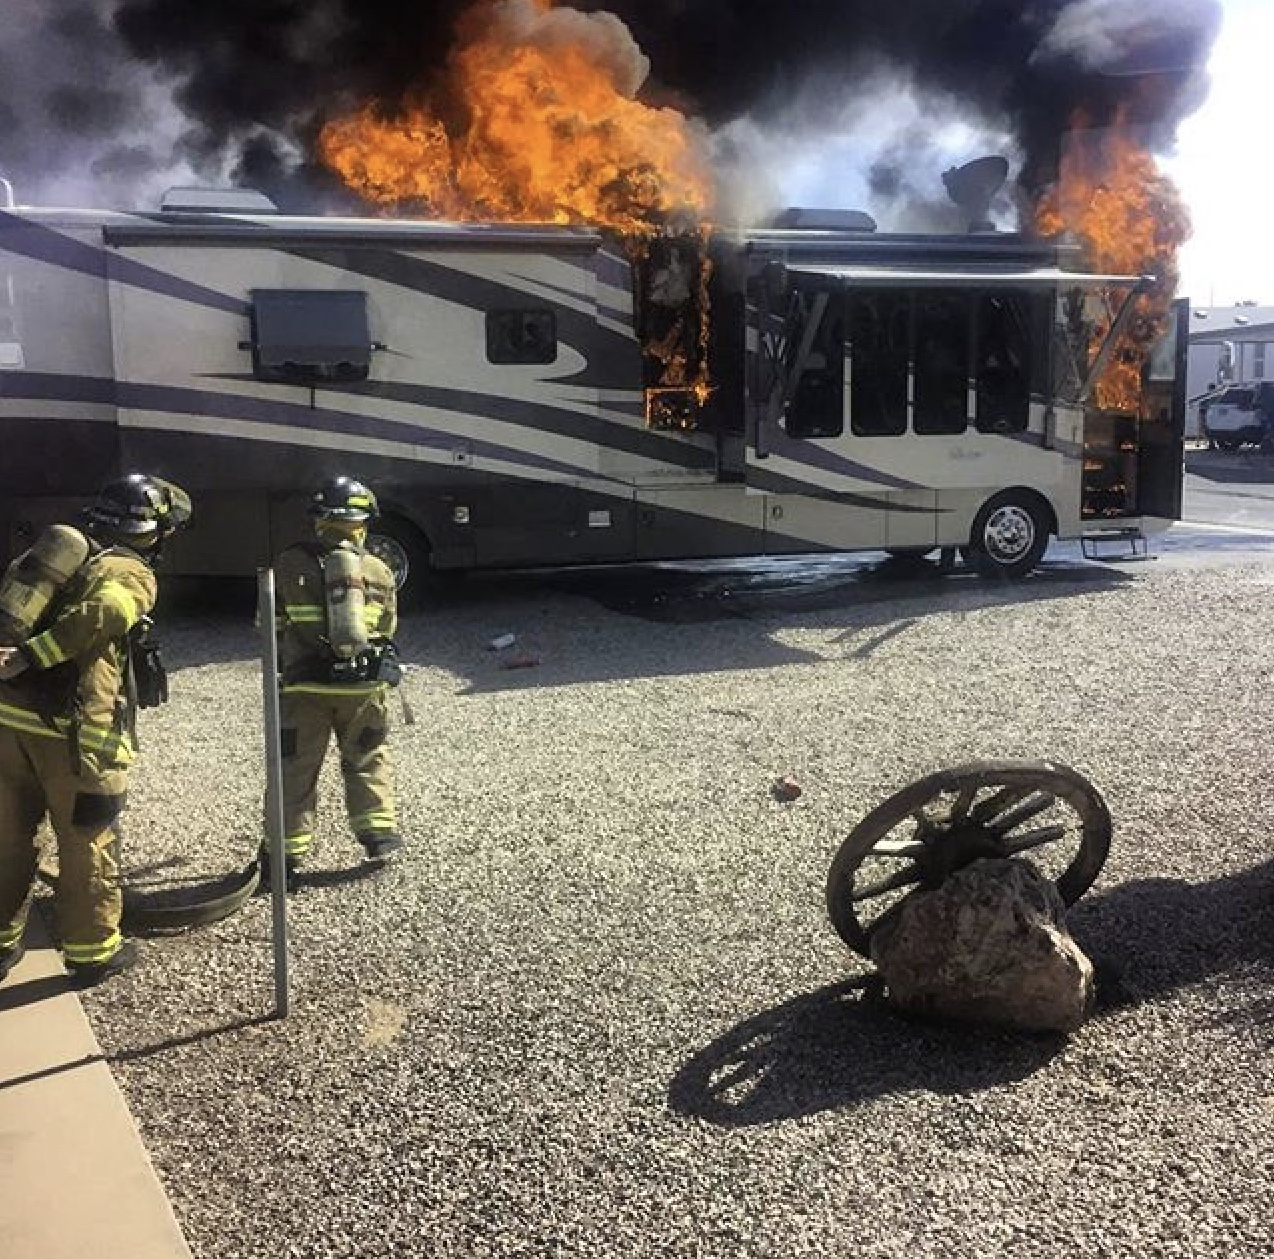 firefighters running a hose to an RV that is on fire